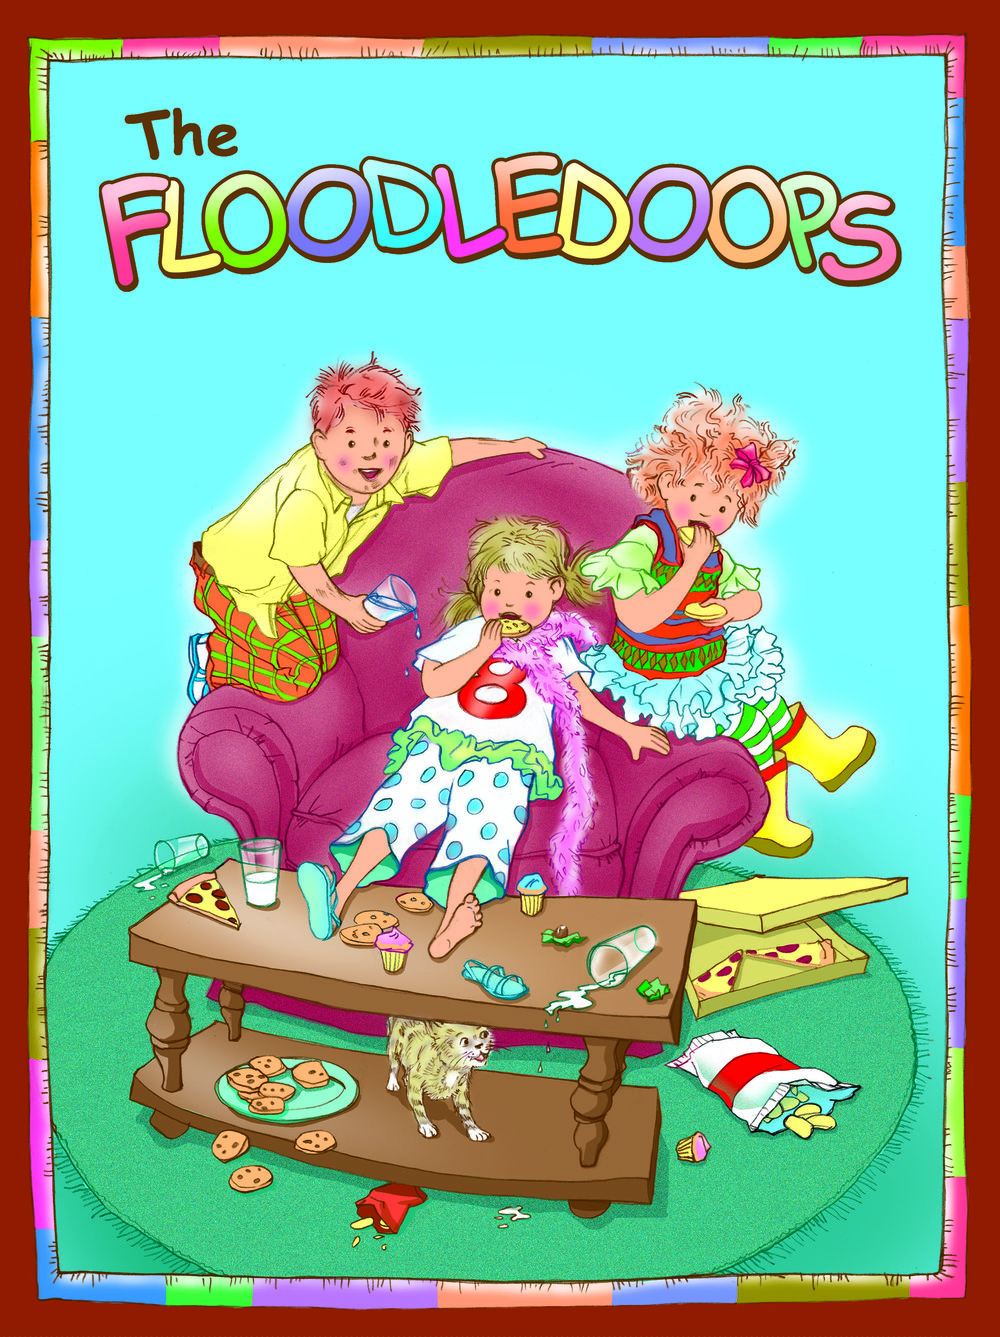 The Floodledoops for Barney & Friends